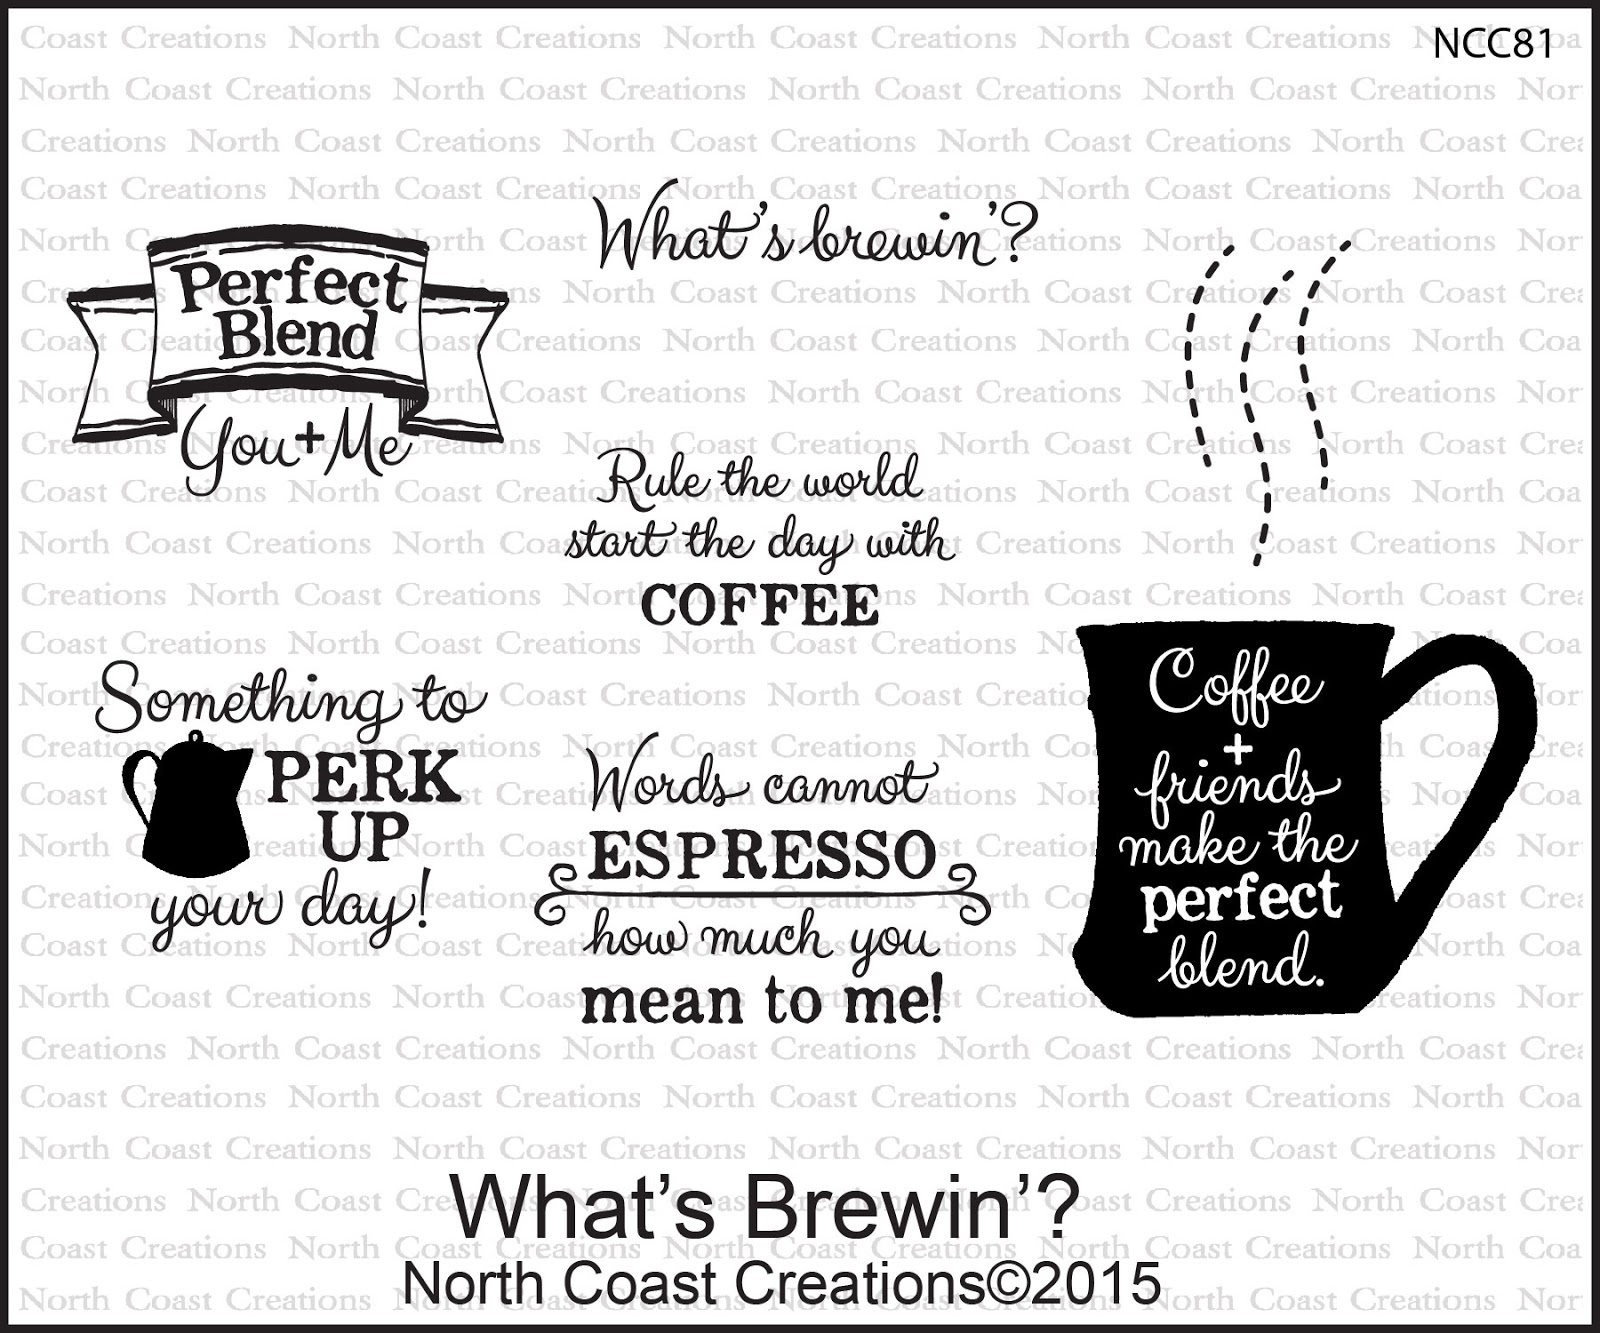 Stamps - North Coast Creations What's Brewin' ?